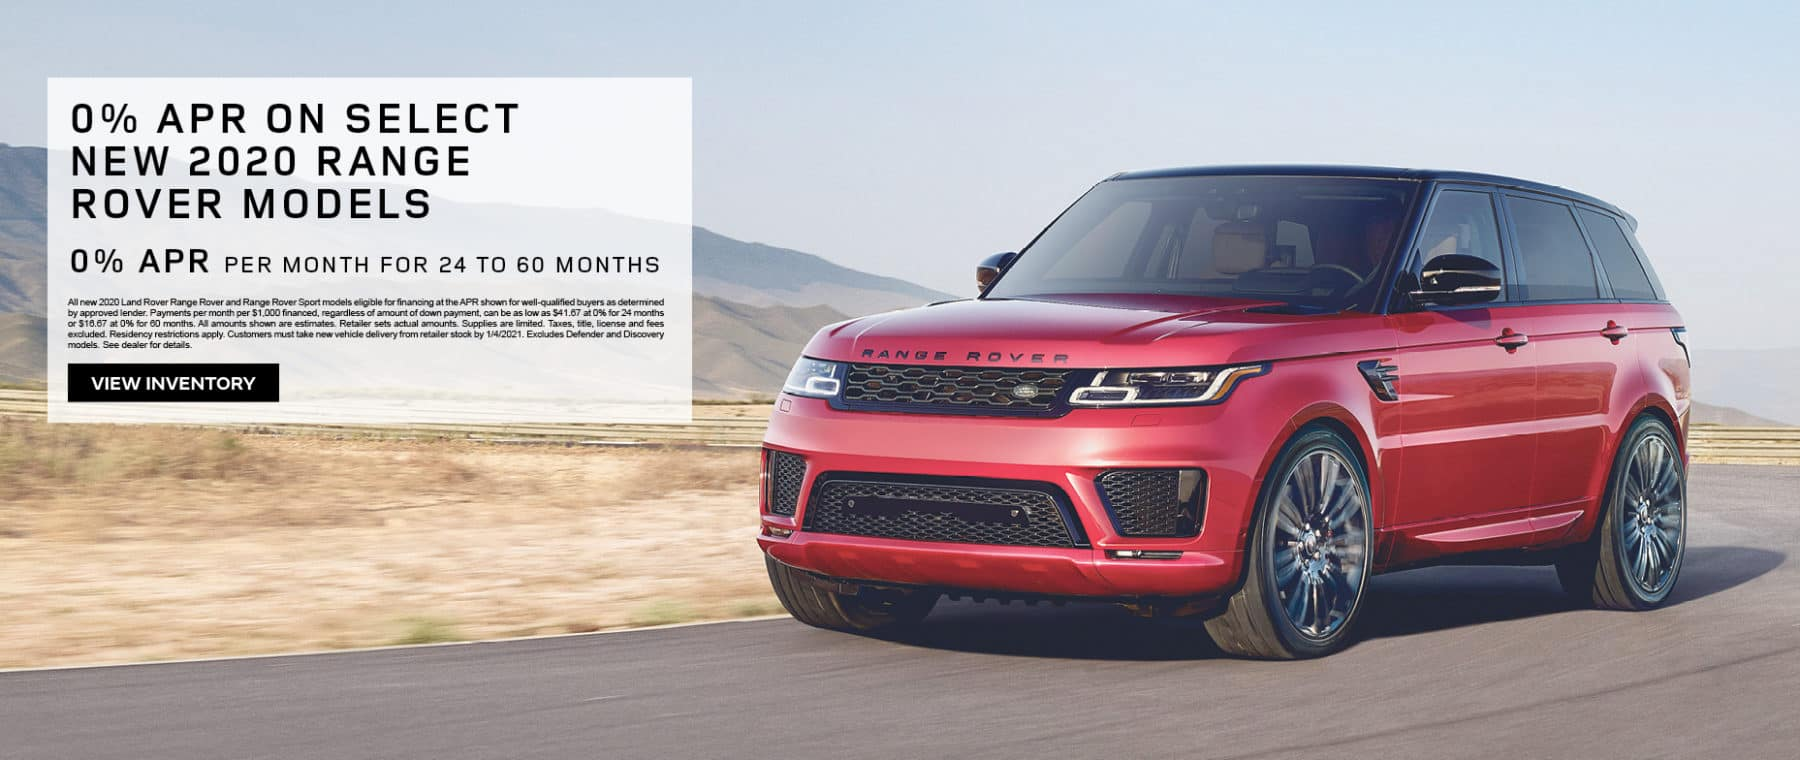 0% APR on Select New 2020 Range Rover Models